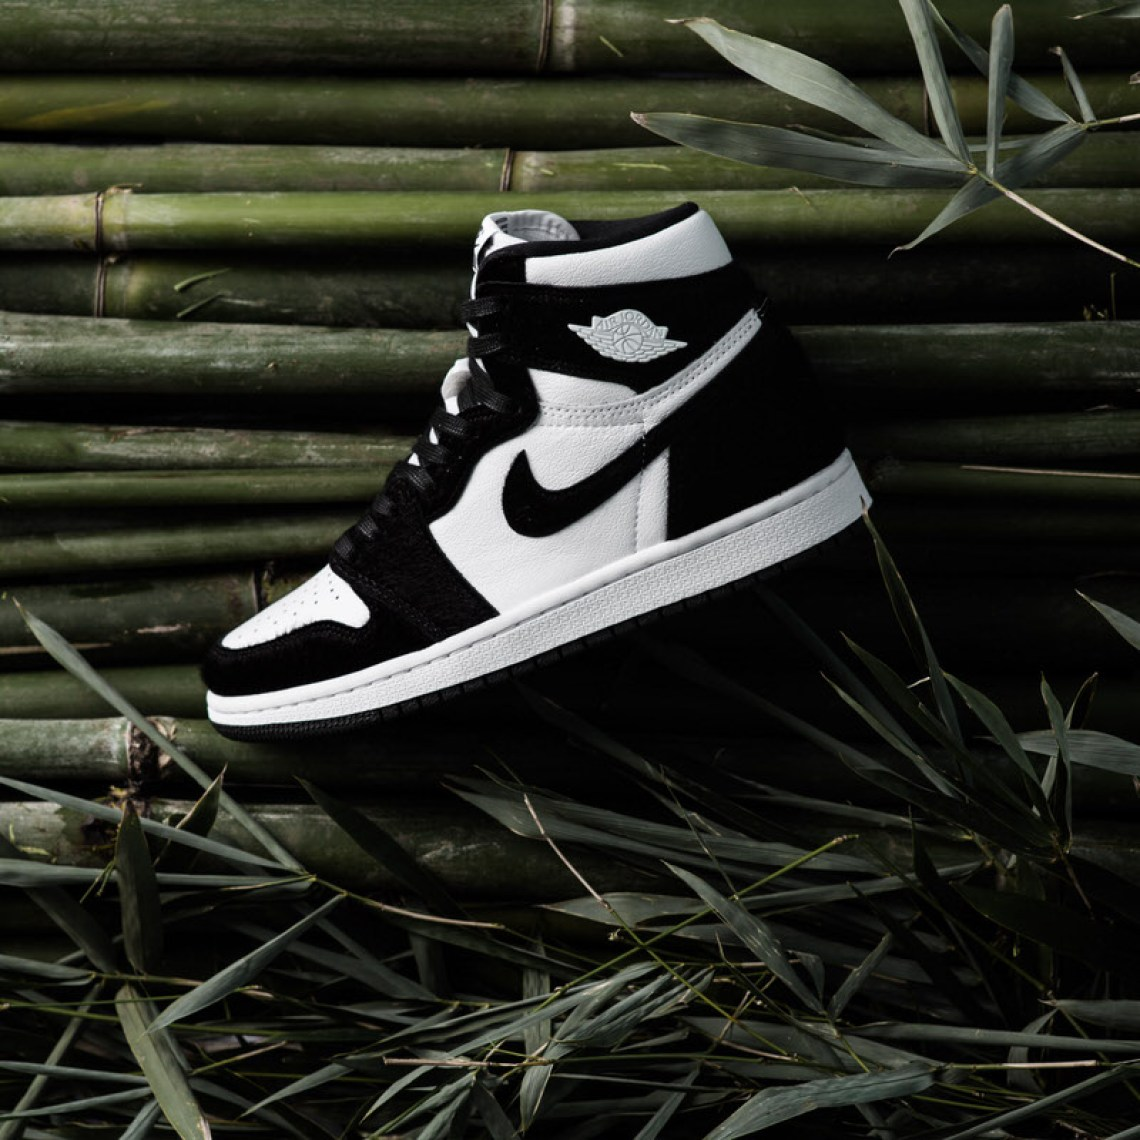 outlet store f9c6d 80674 Air Jordan 1 Retro High OG WMNS. Colorway  Black Black-Metallic Gold-white.  Style    CD0461-007. Release Date  May 10, 2019. Price   160